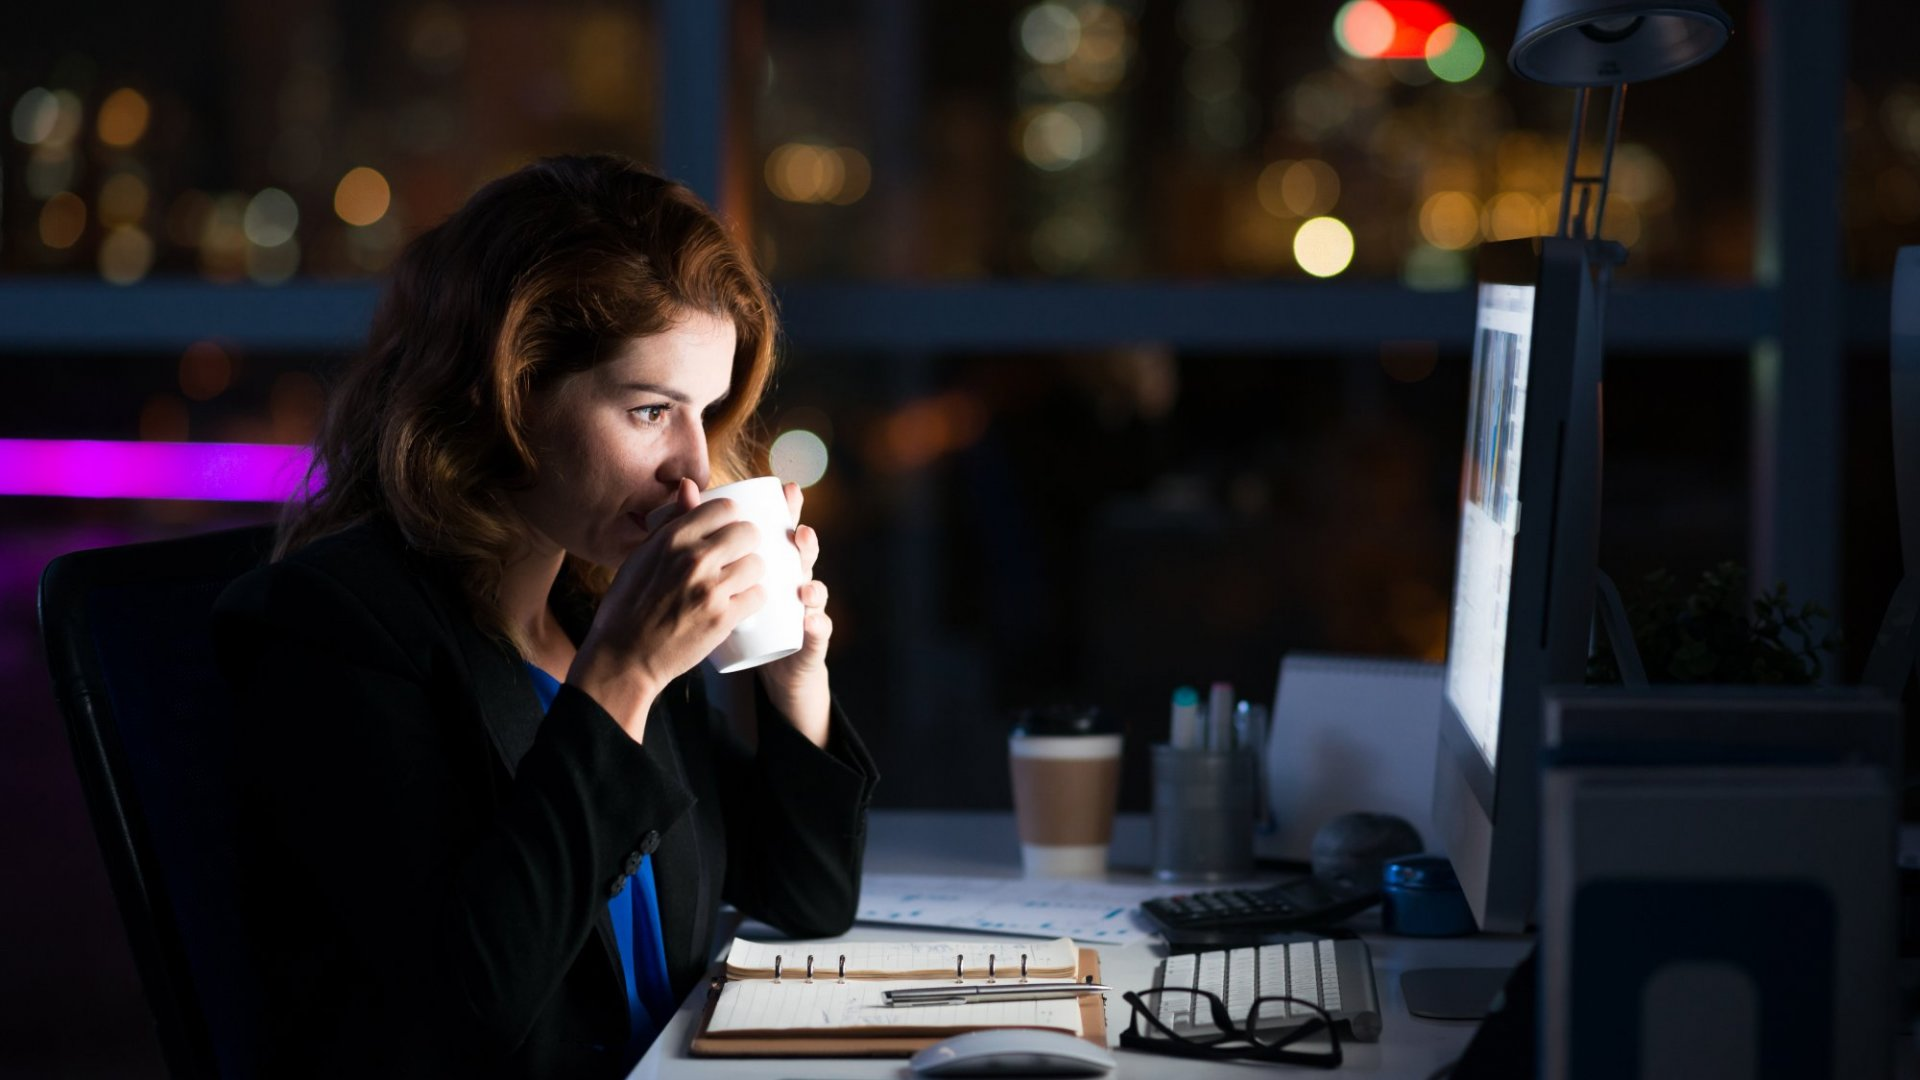 Are You a Hard Worker or a Workaholic? Science Says This Is the Critical Difference